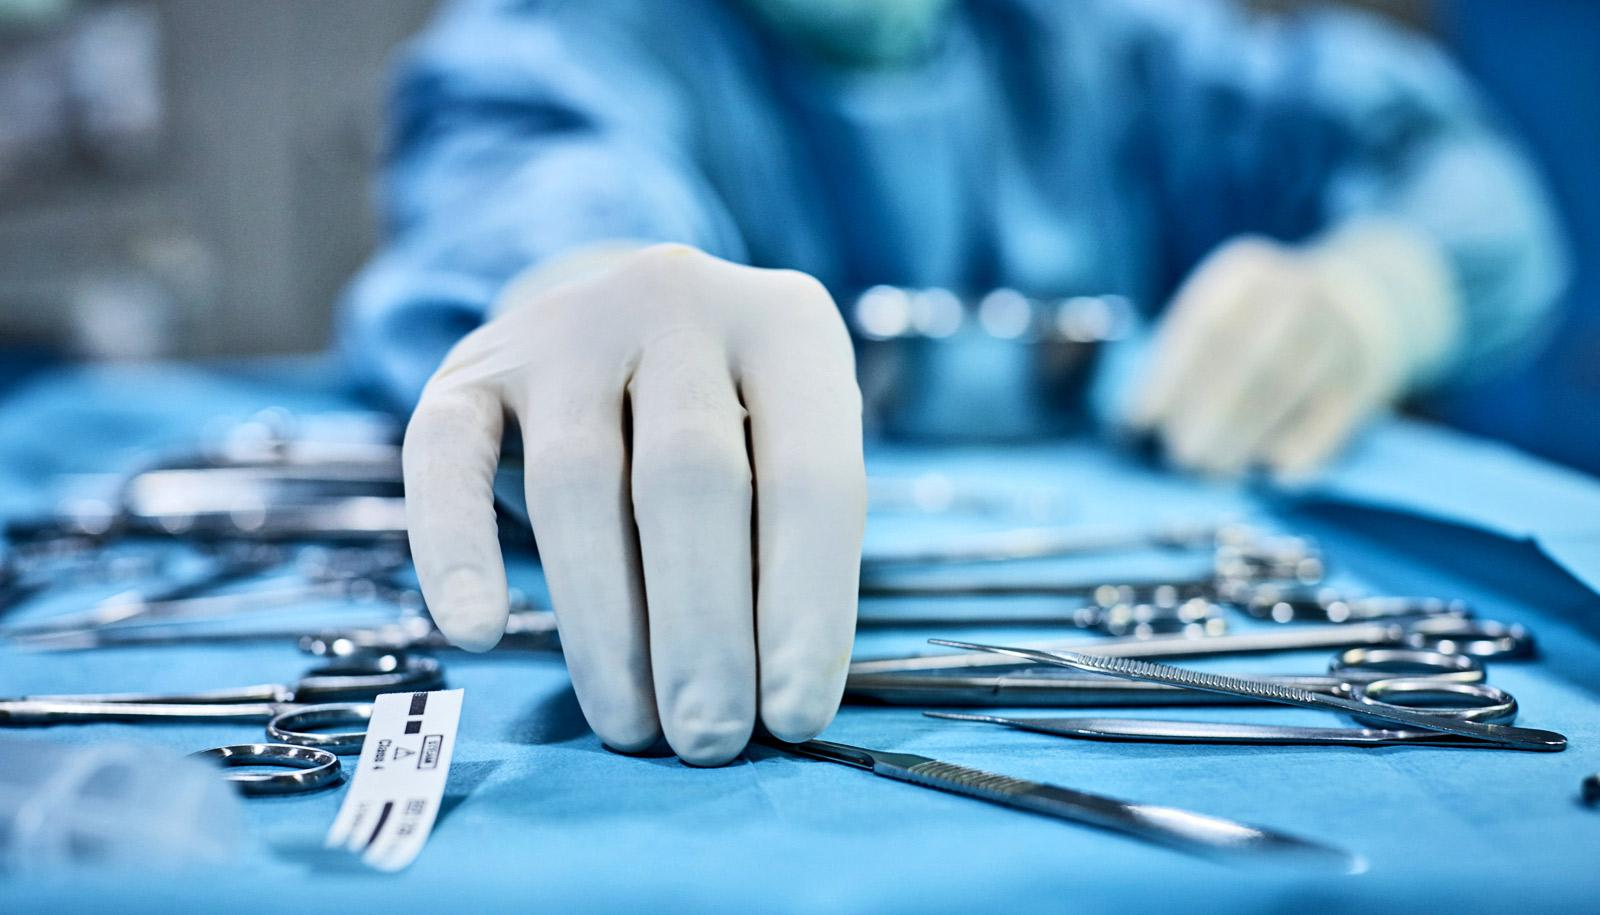 surgeon picks up tool from tray